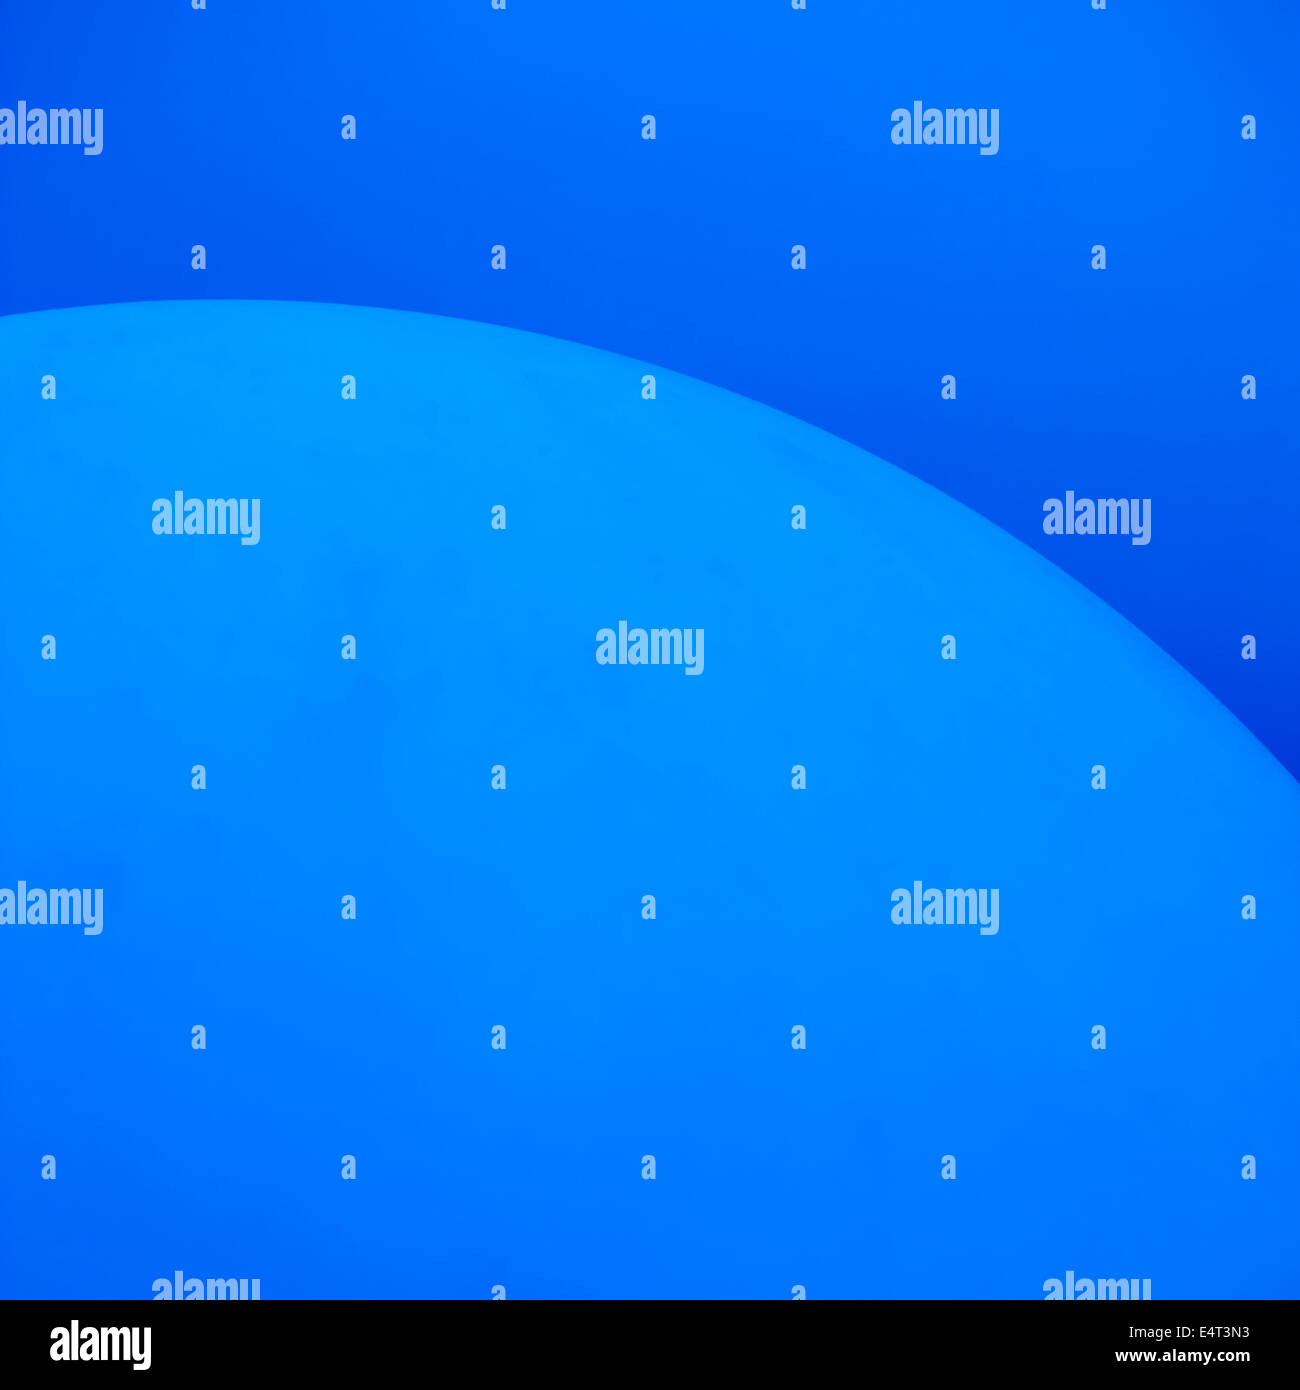 Blue Abstraction - Stock Image